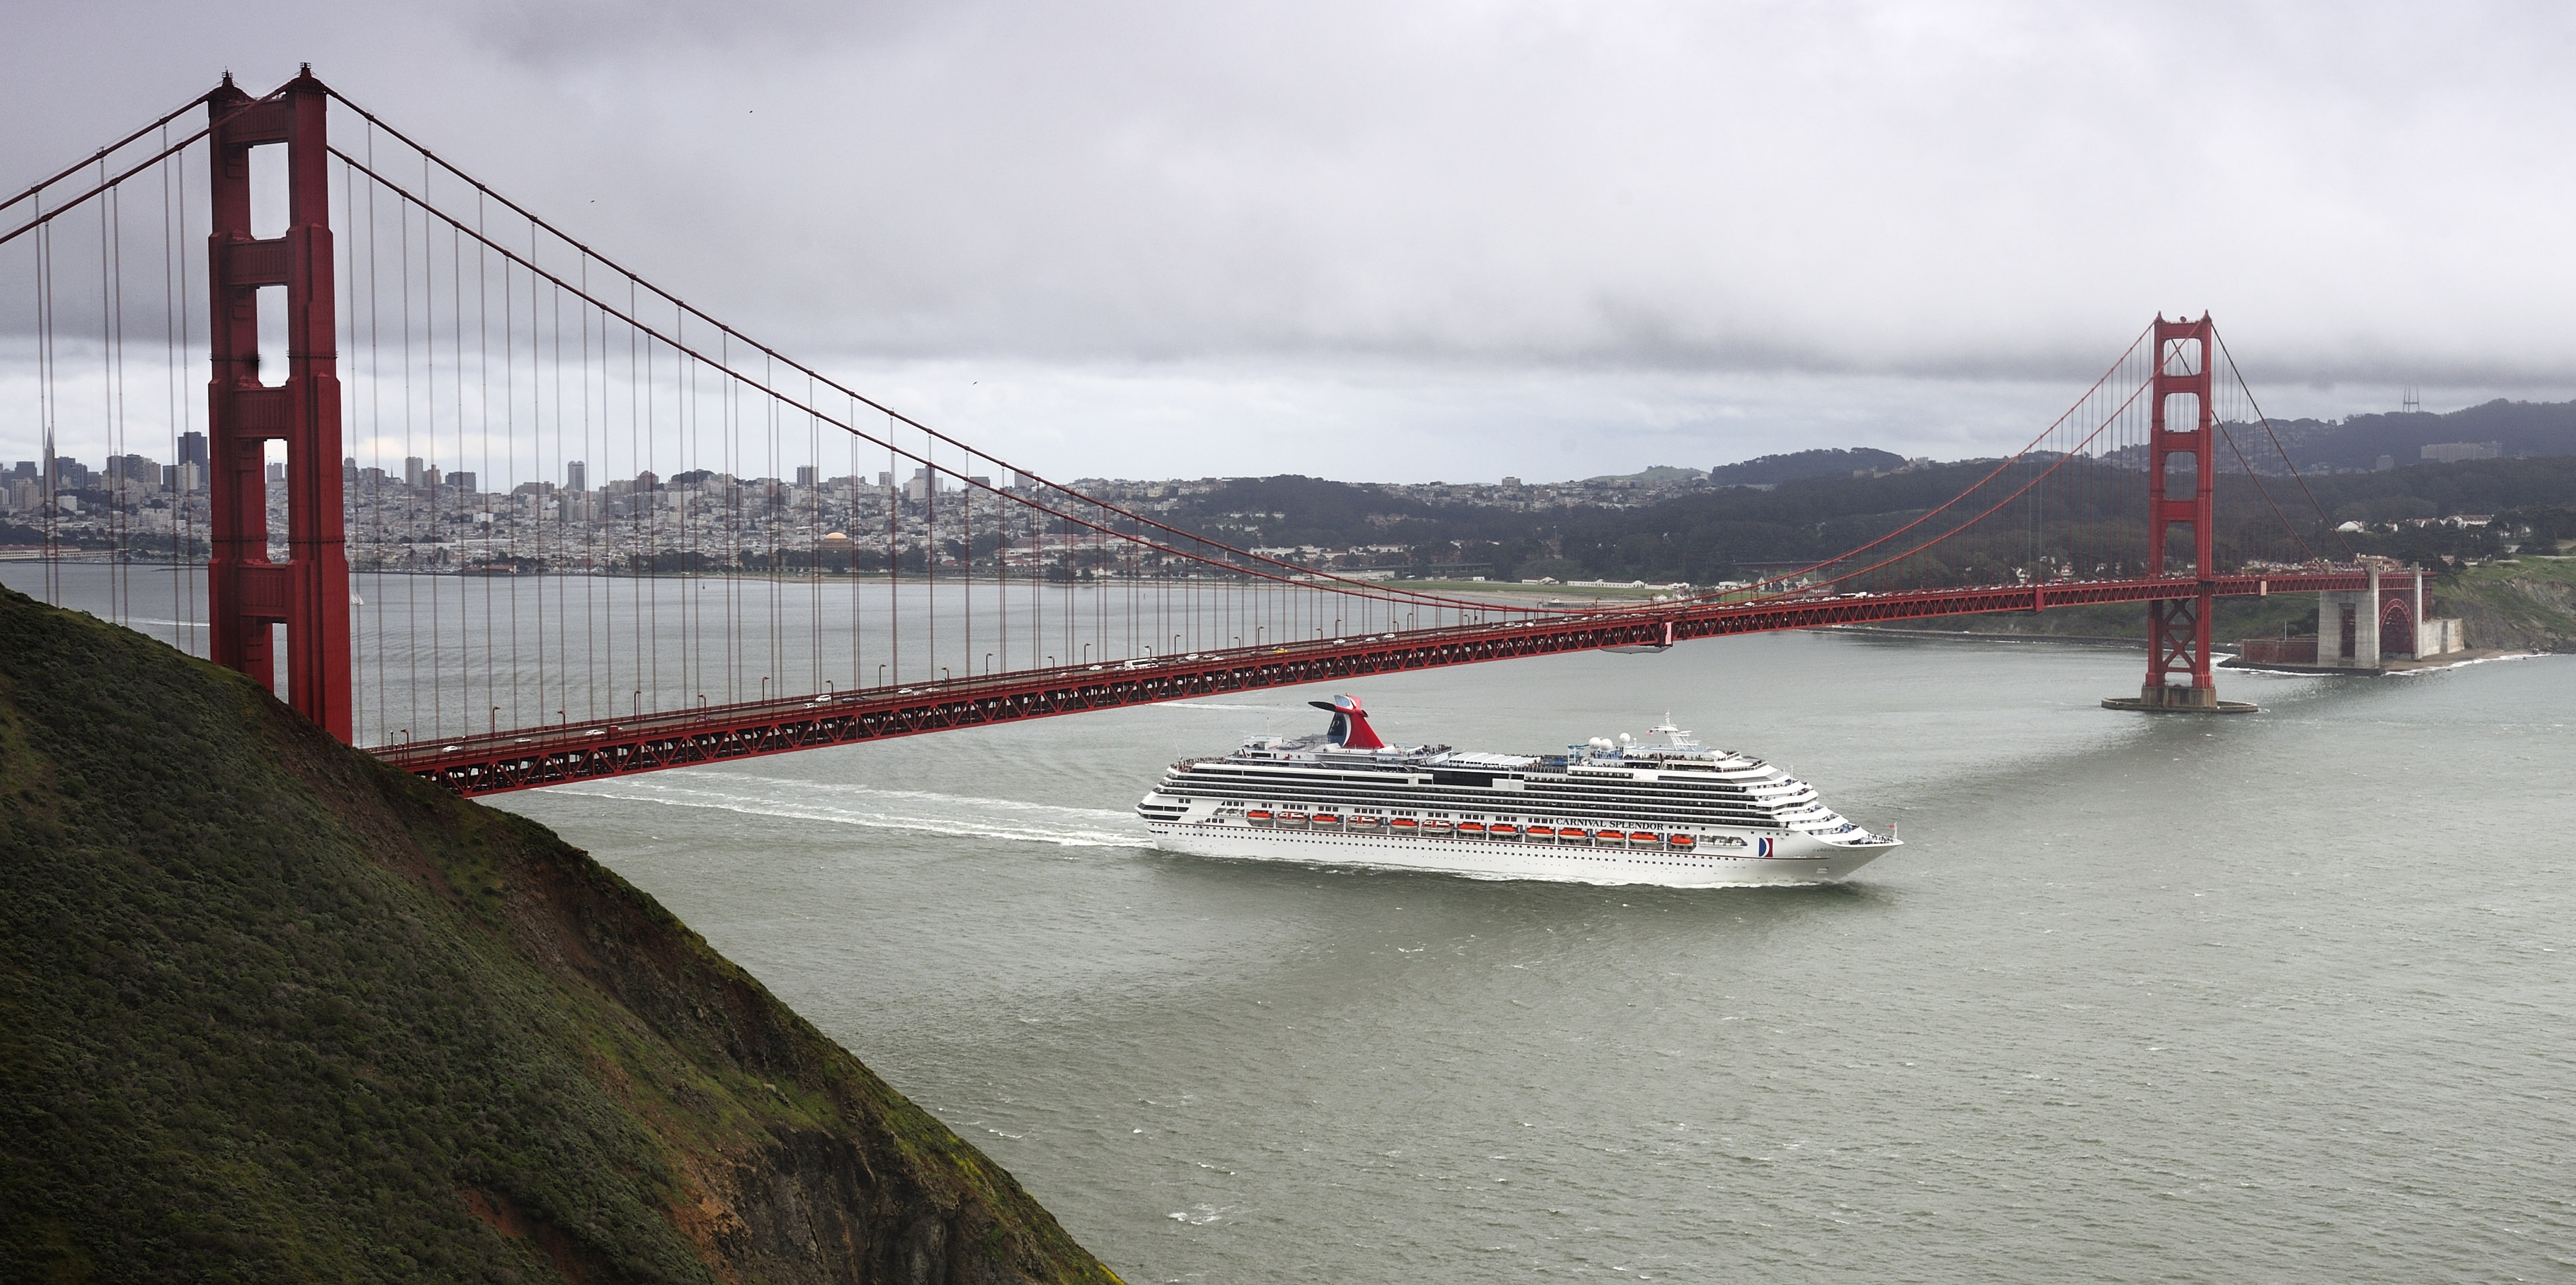 ship_splendor_san_francisco_032109_dsc4344